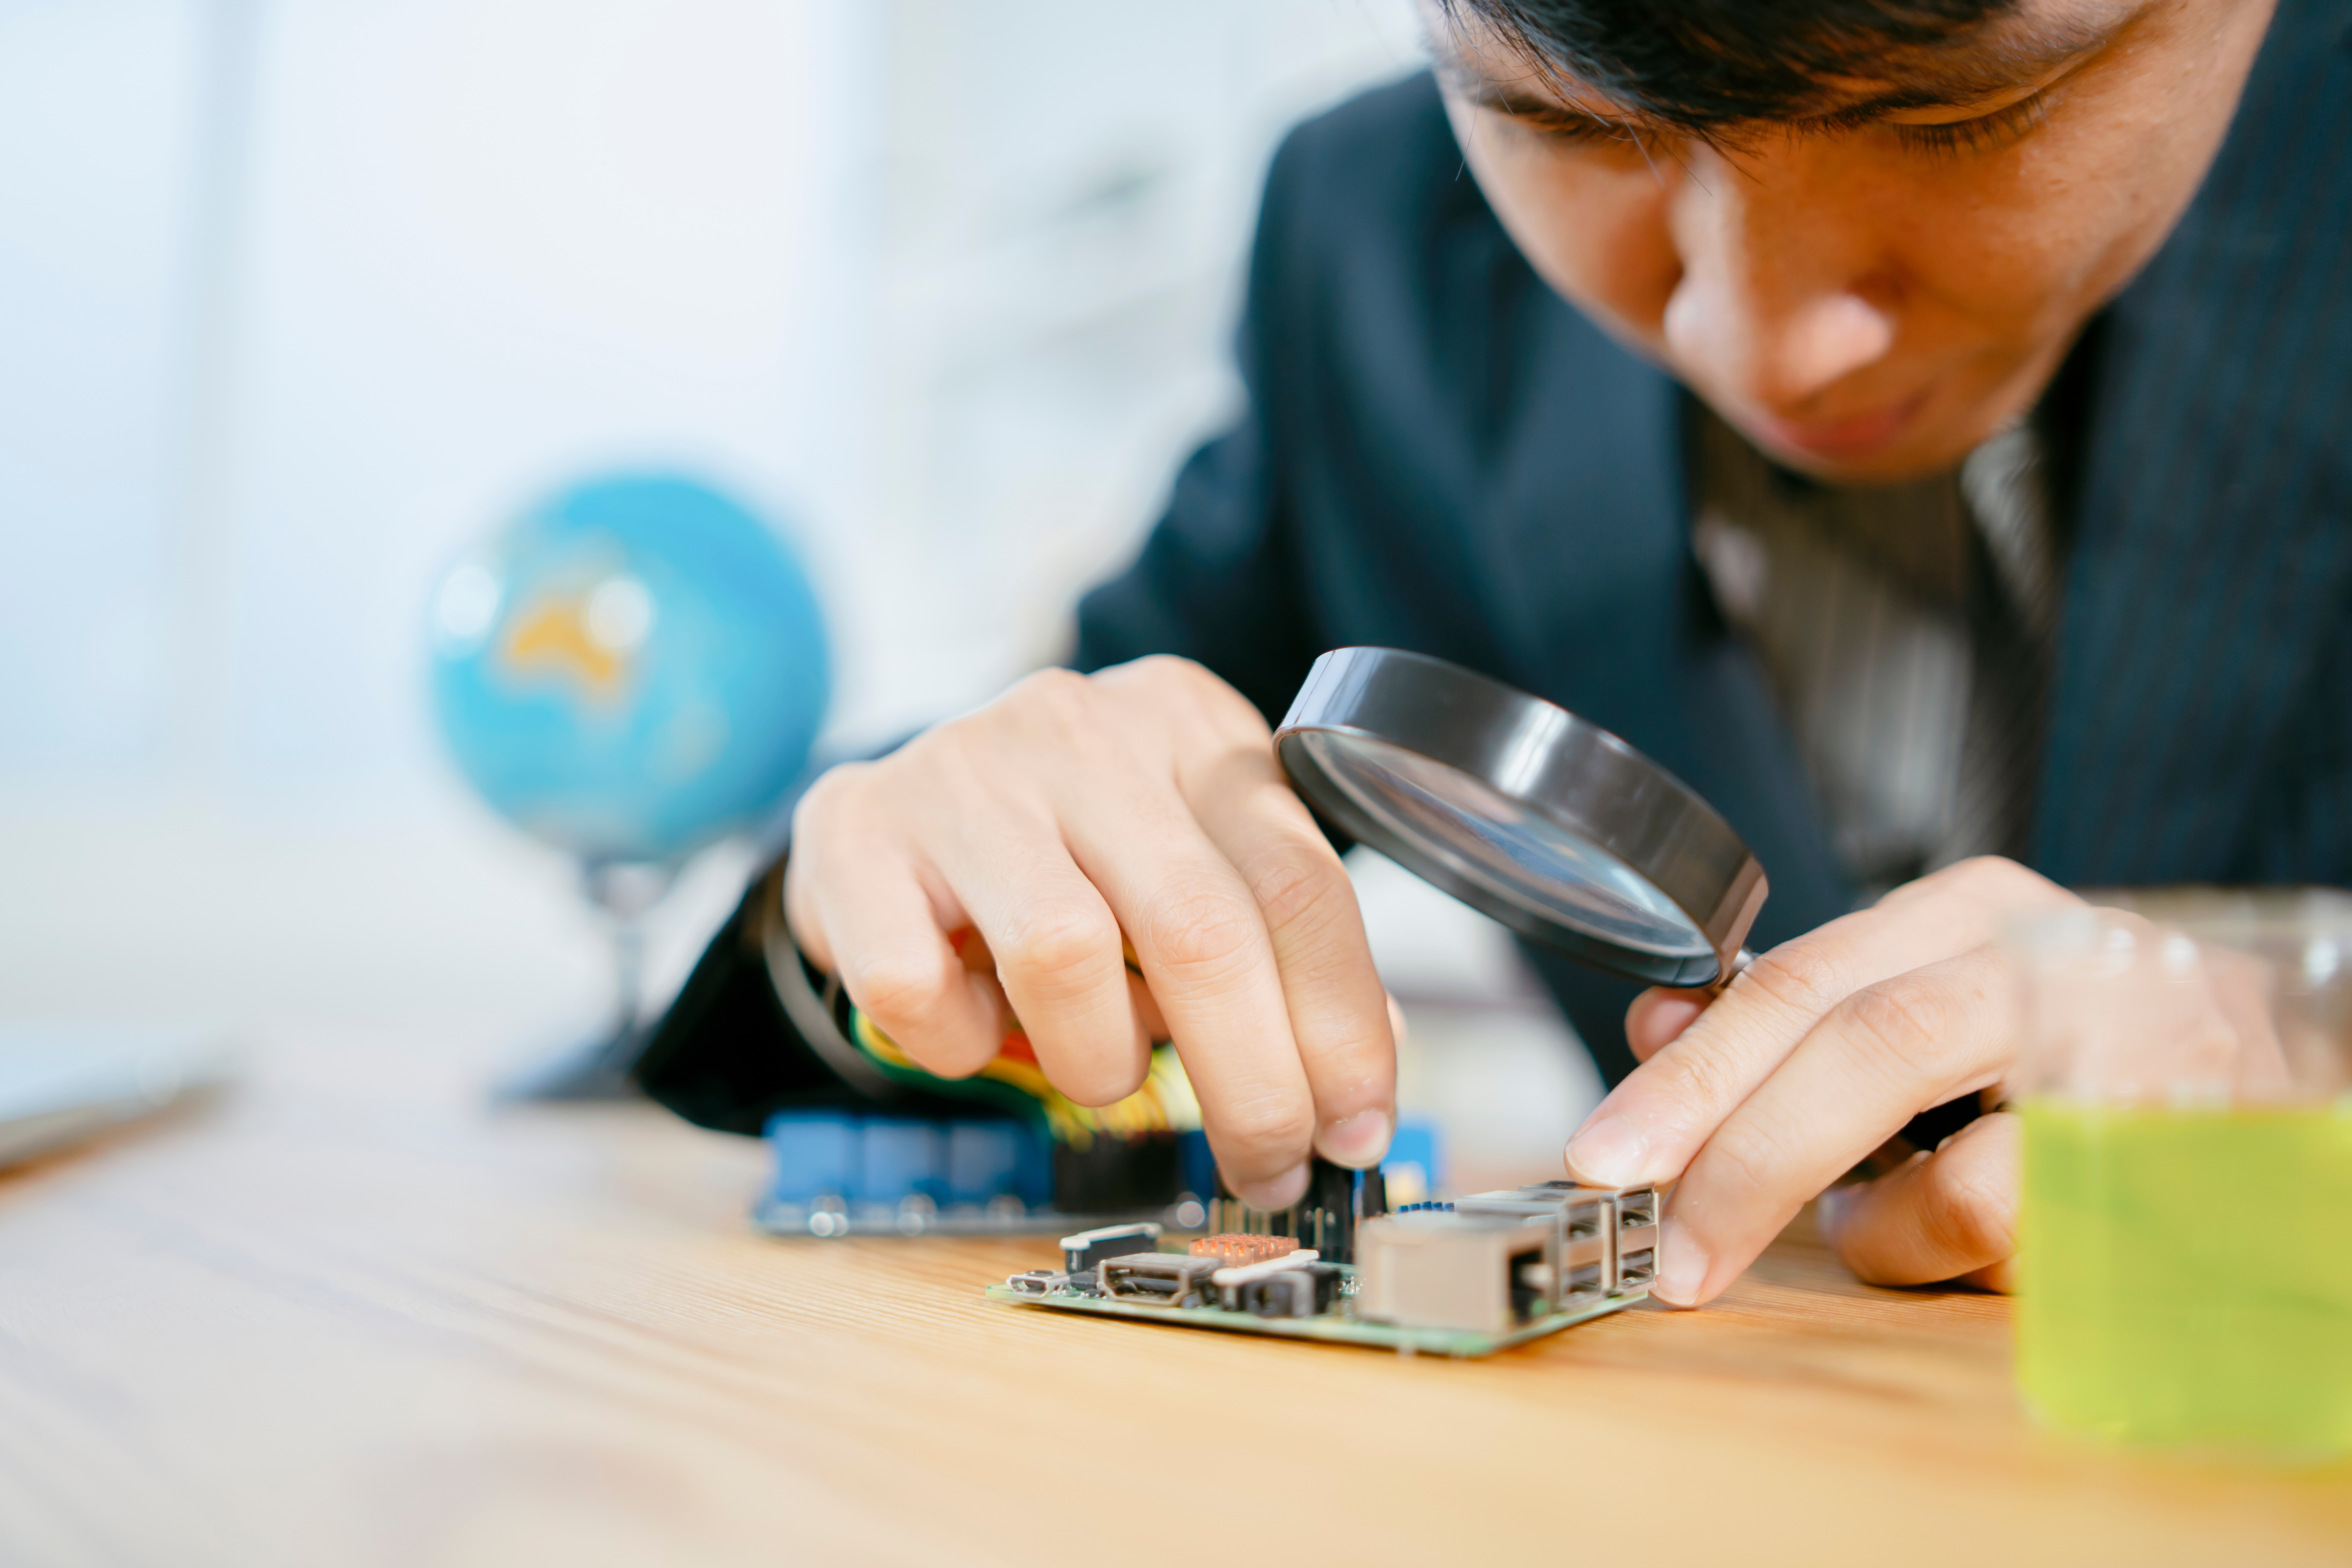 boy using a magnifying glass to examine a microcontroller